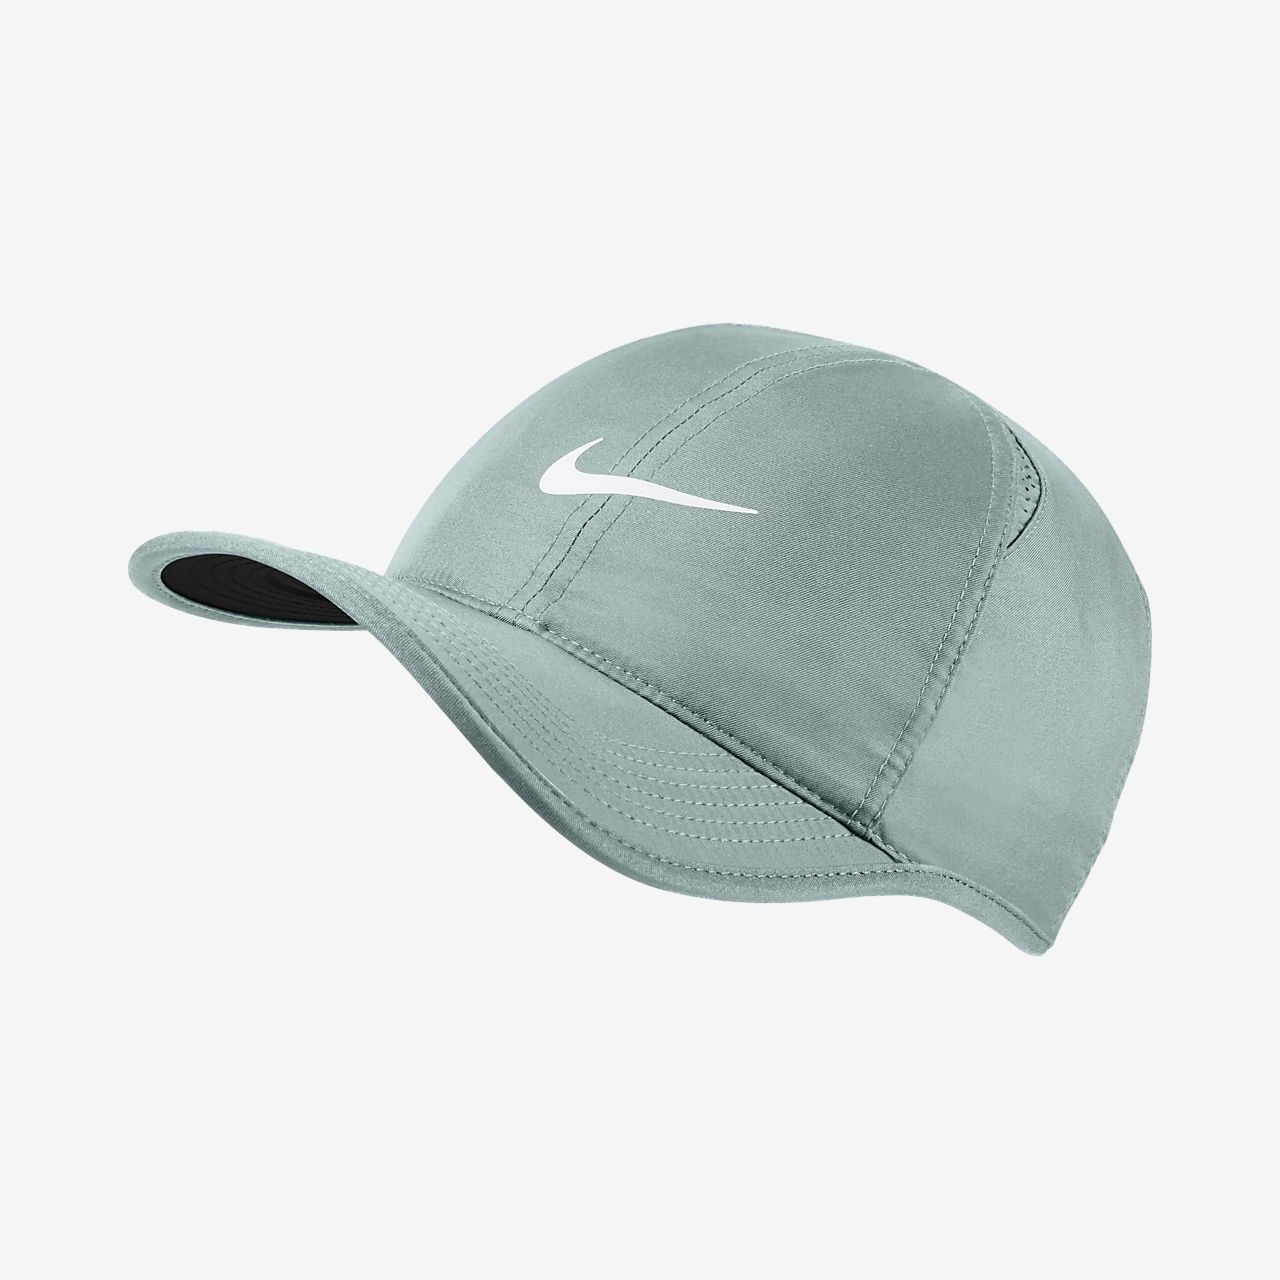 Low Resolution NikeCourt Featherlight Adjustable Tennis Hat NikeCourt Featherlight  Adjustable Tennis Hat